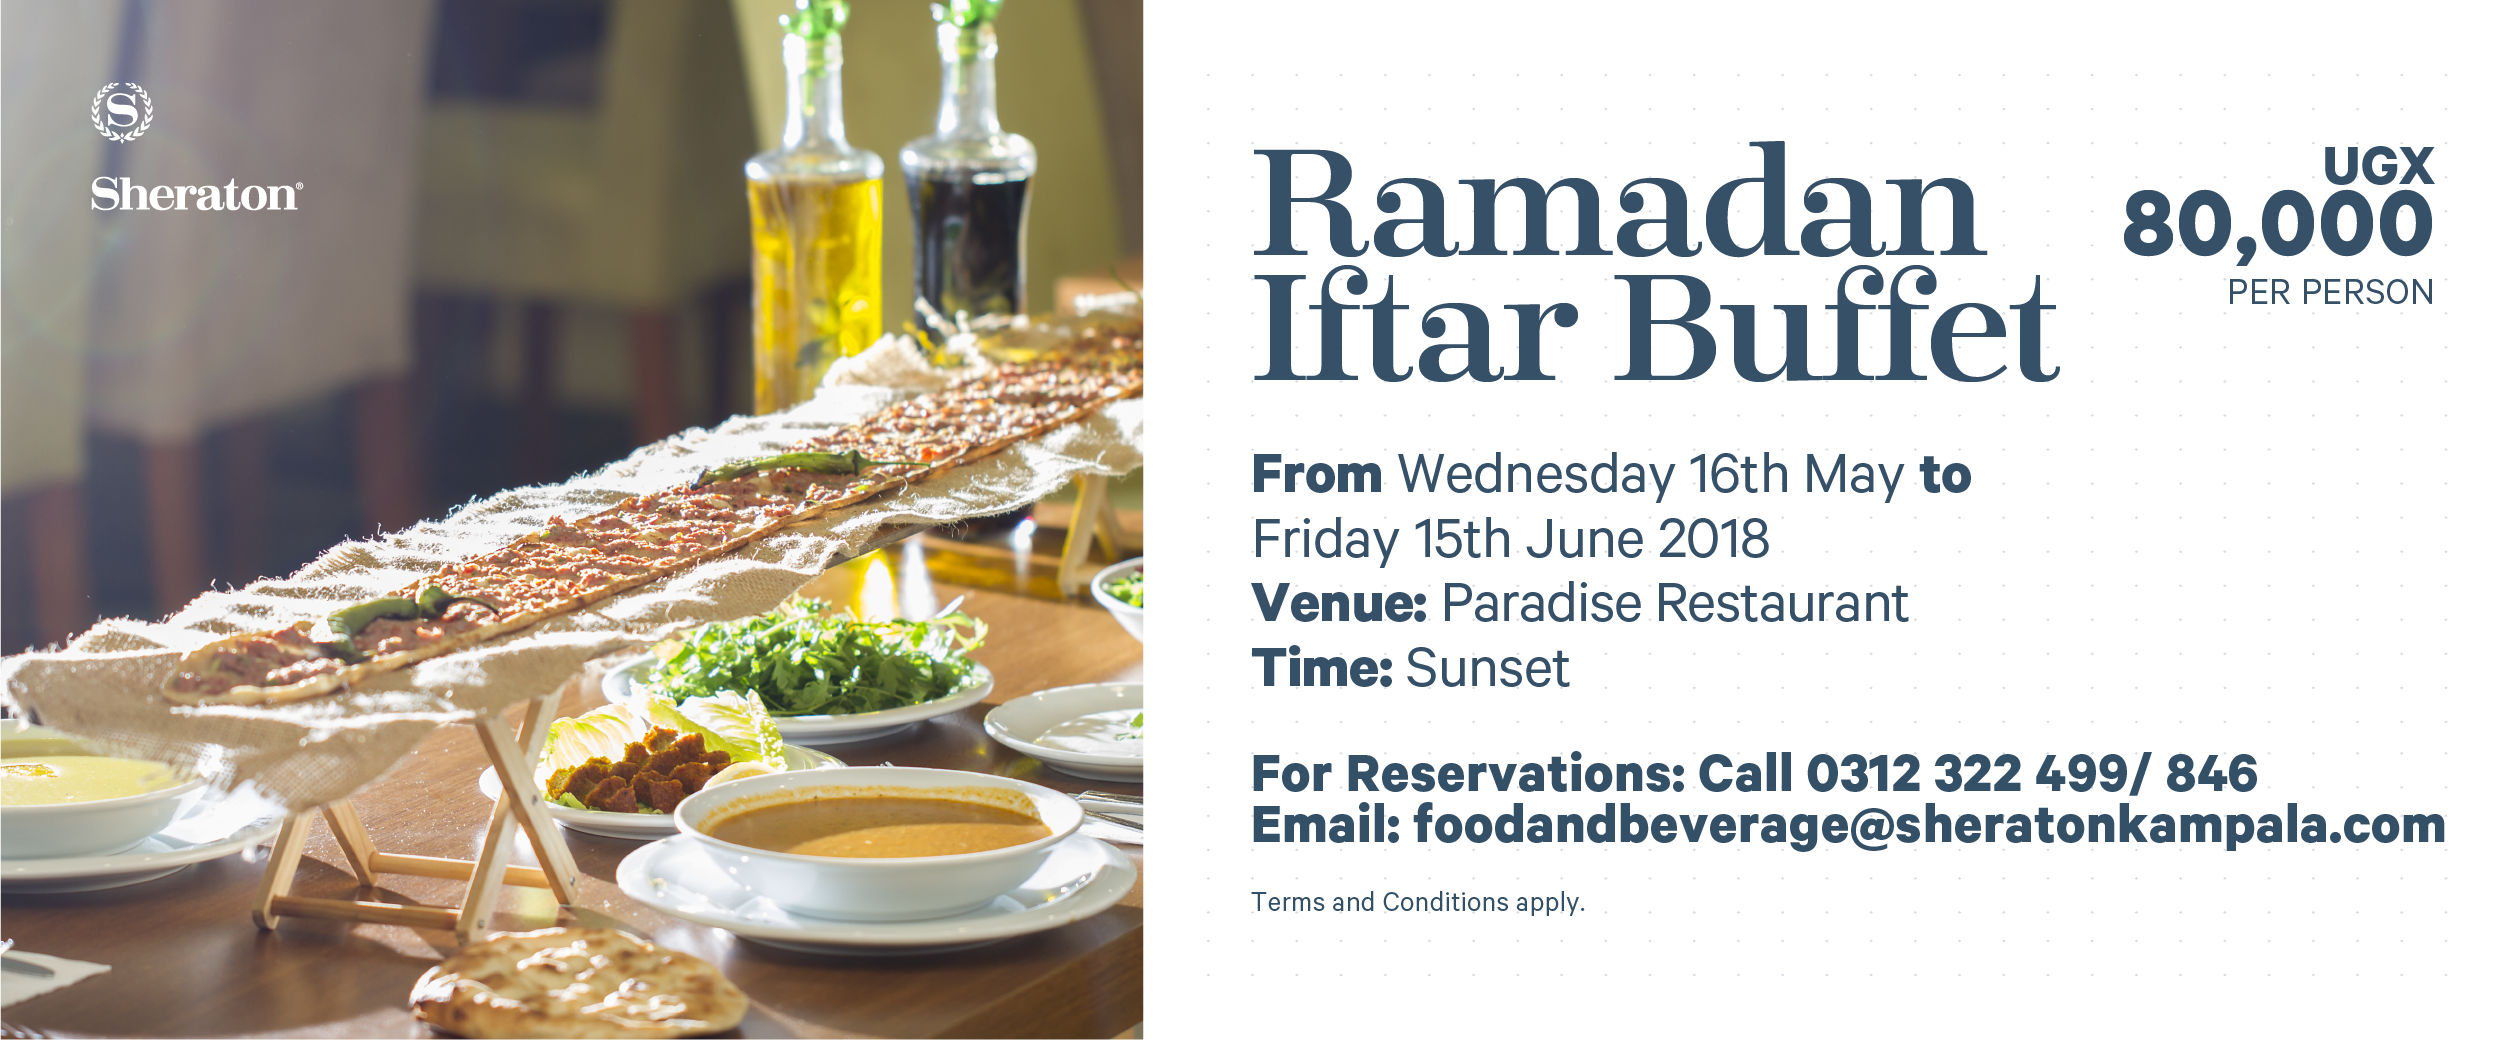 Make the Sheraton your choice for your Iftar Dinner during the Holy Month